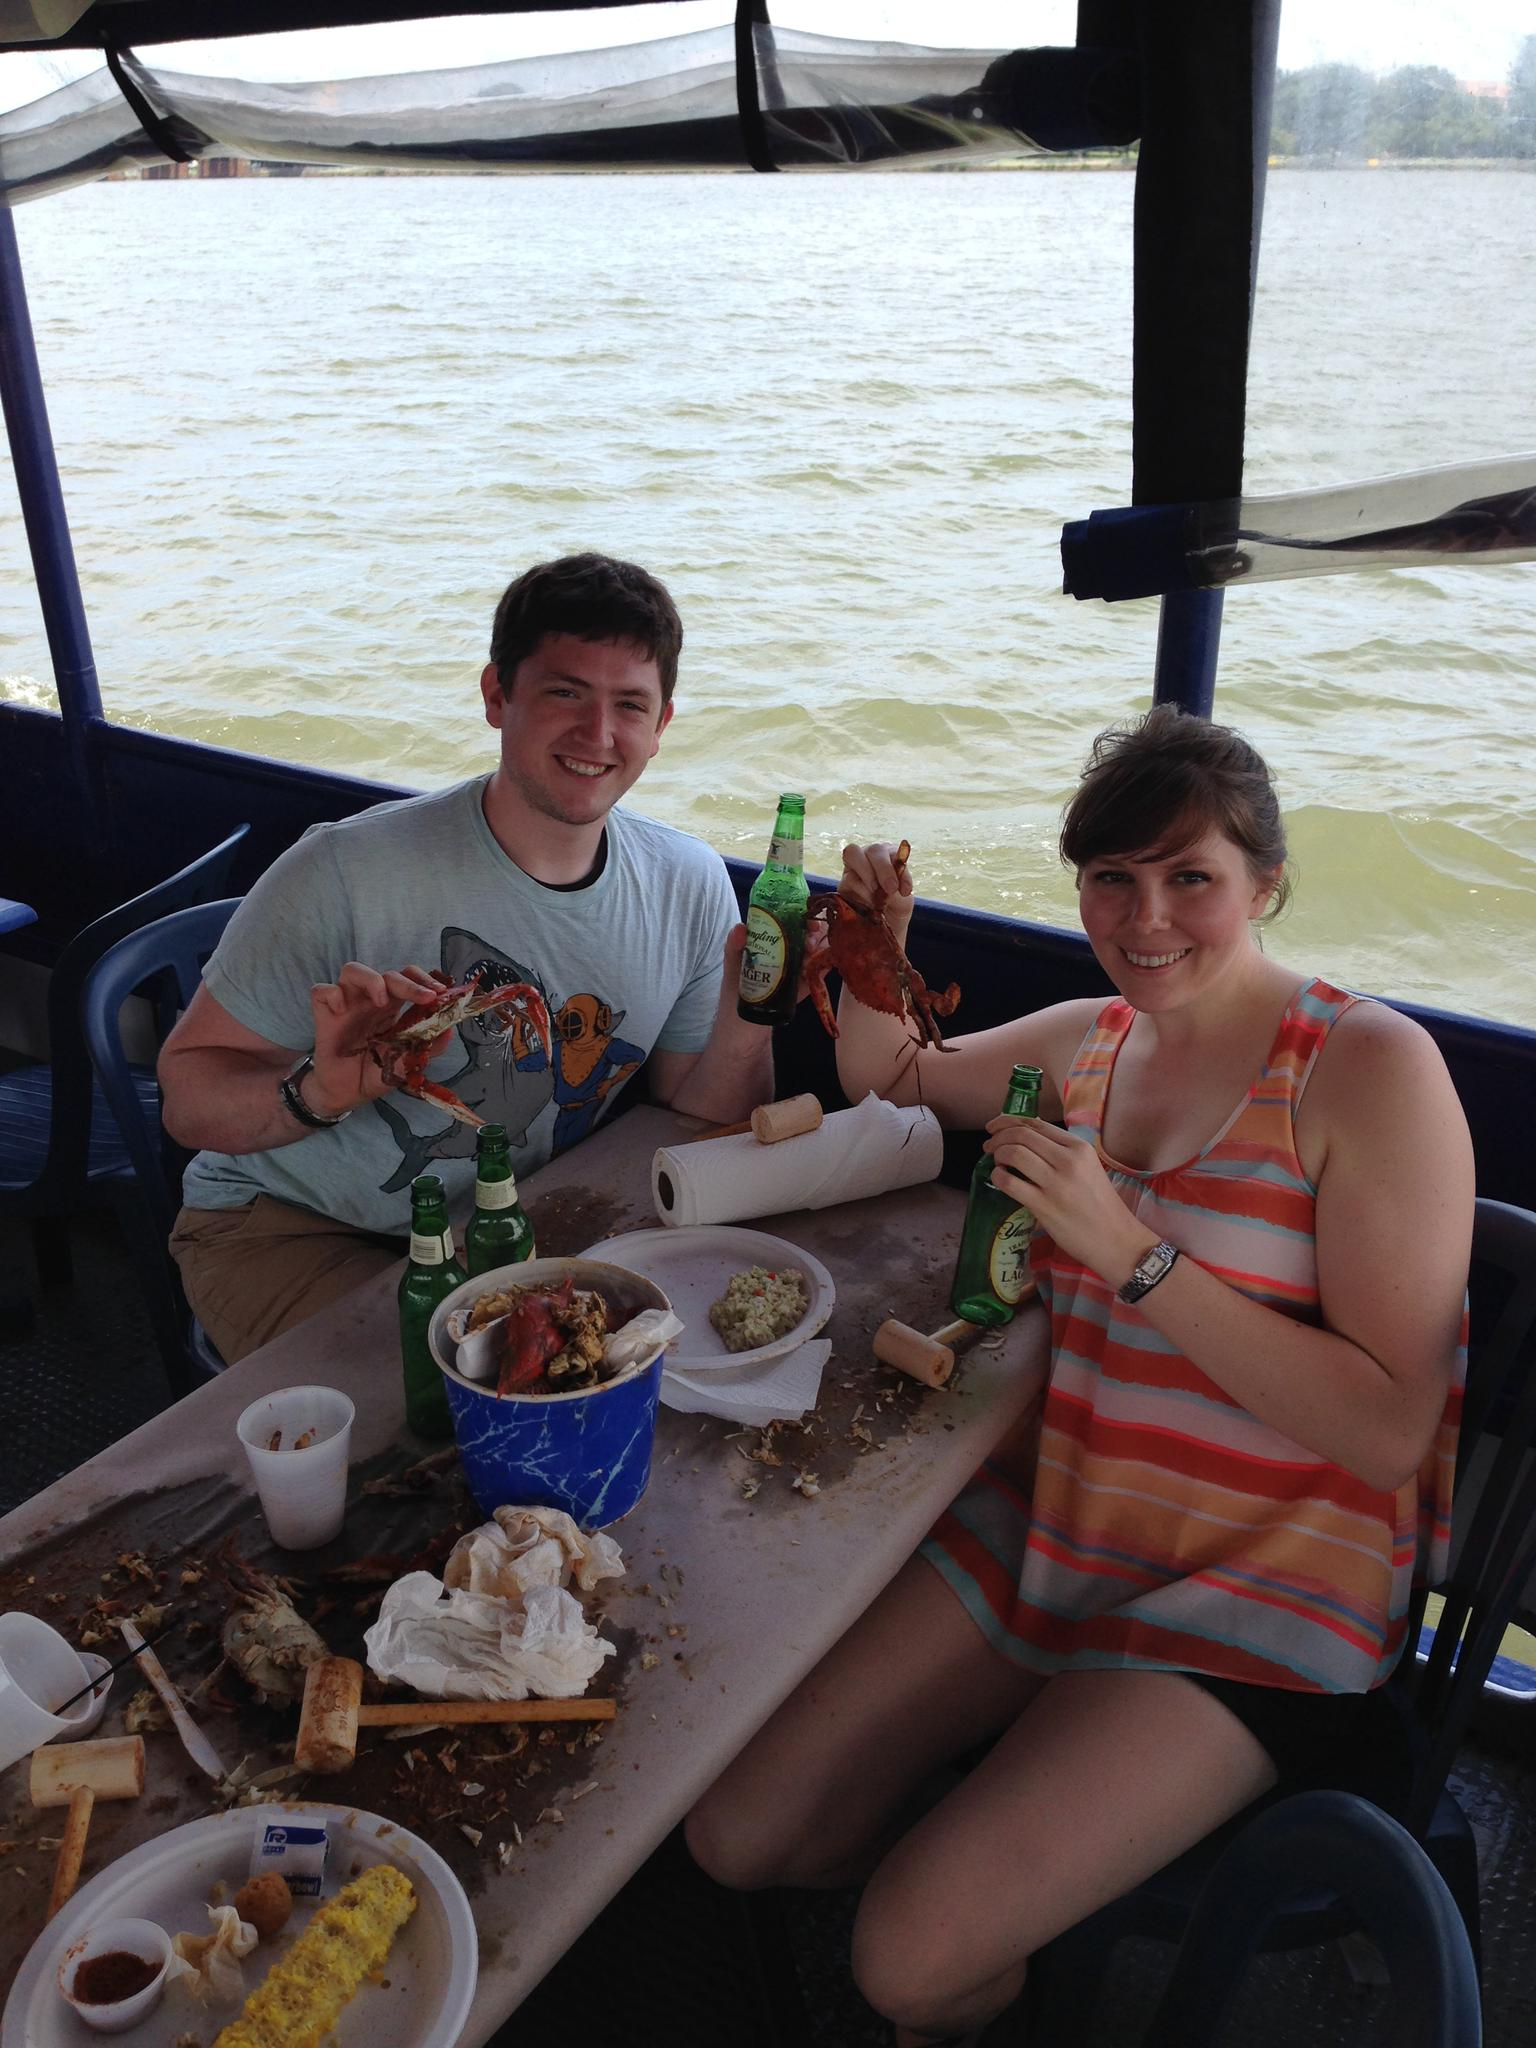 Celebrating Greg's home state with Maryland crabs (2014)